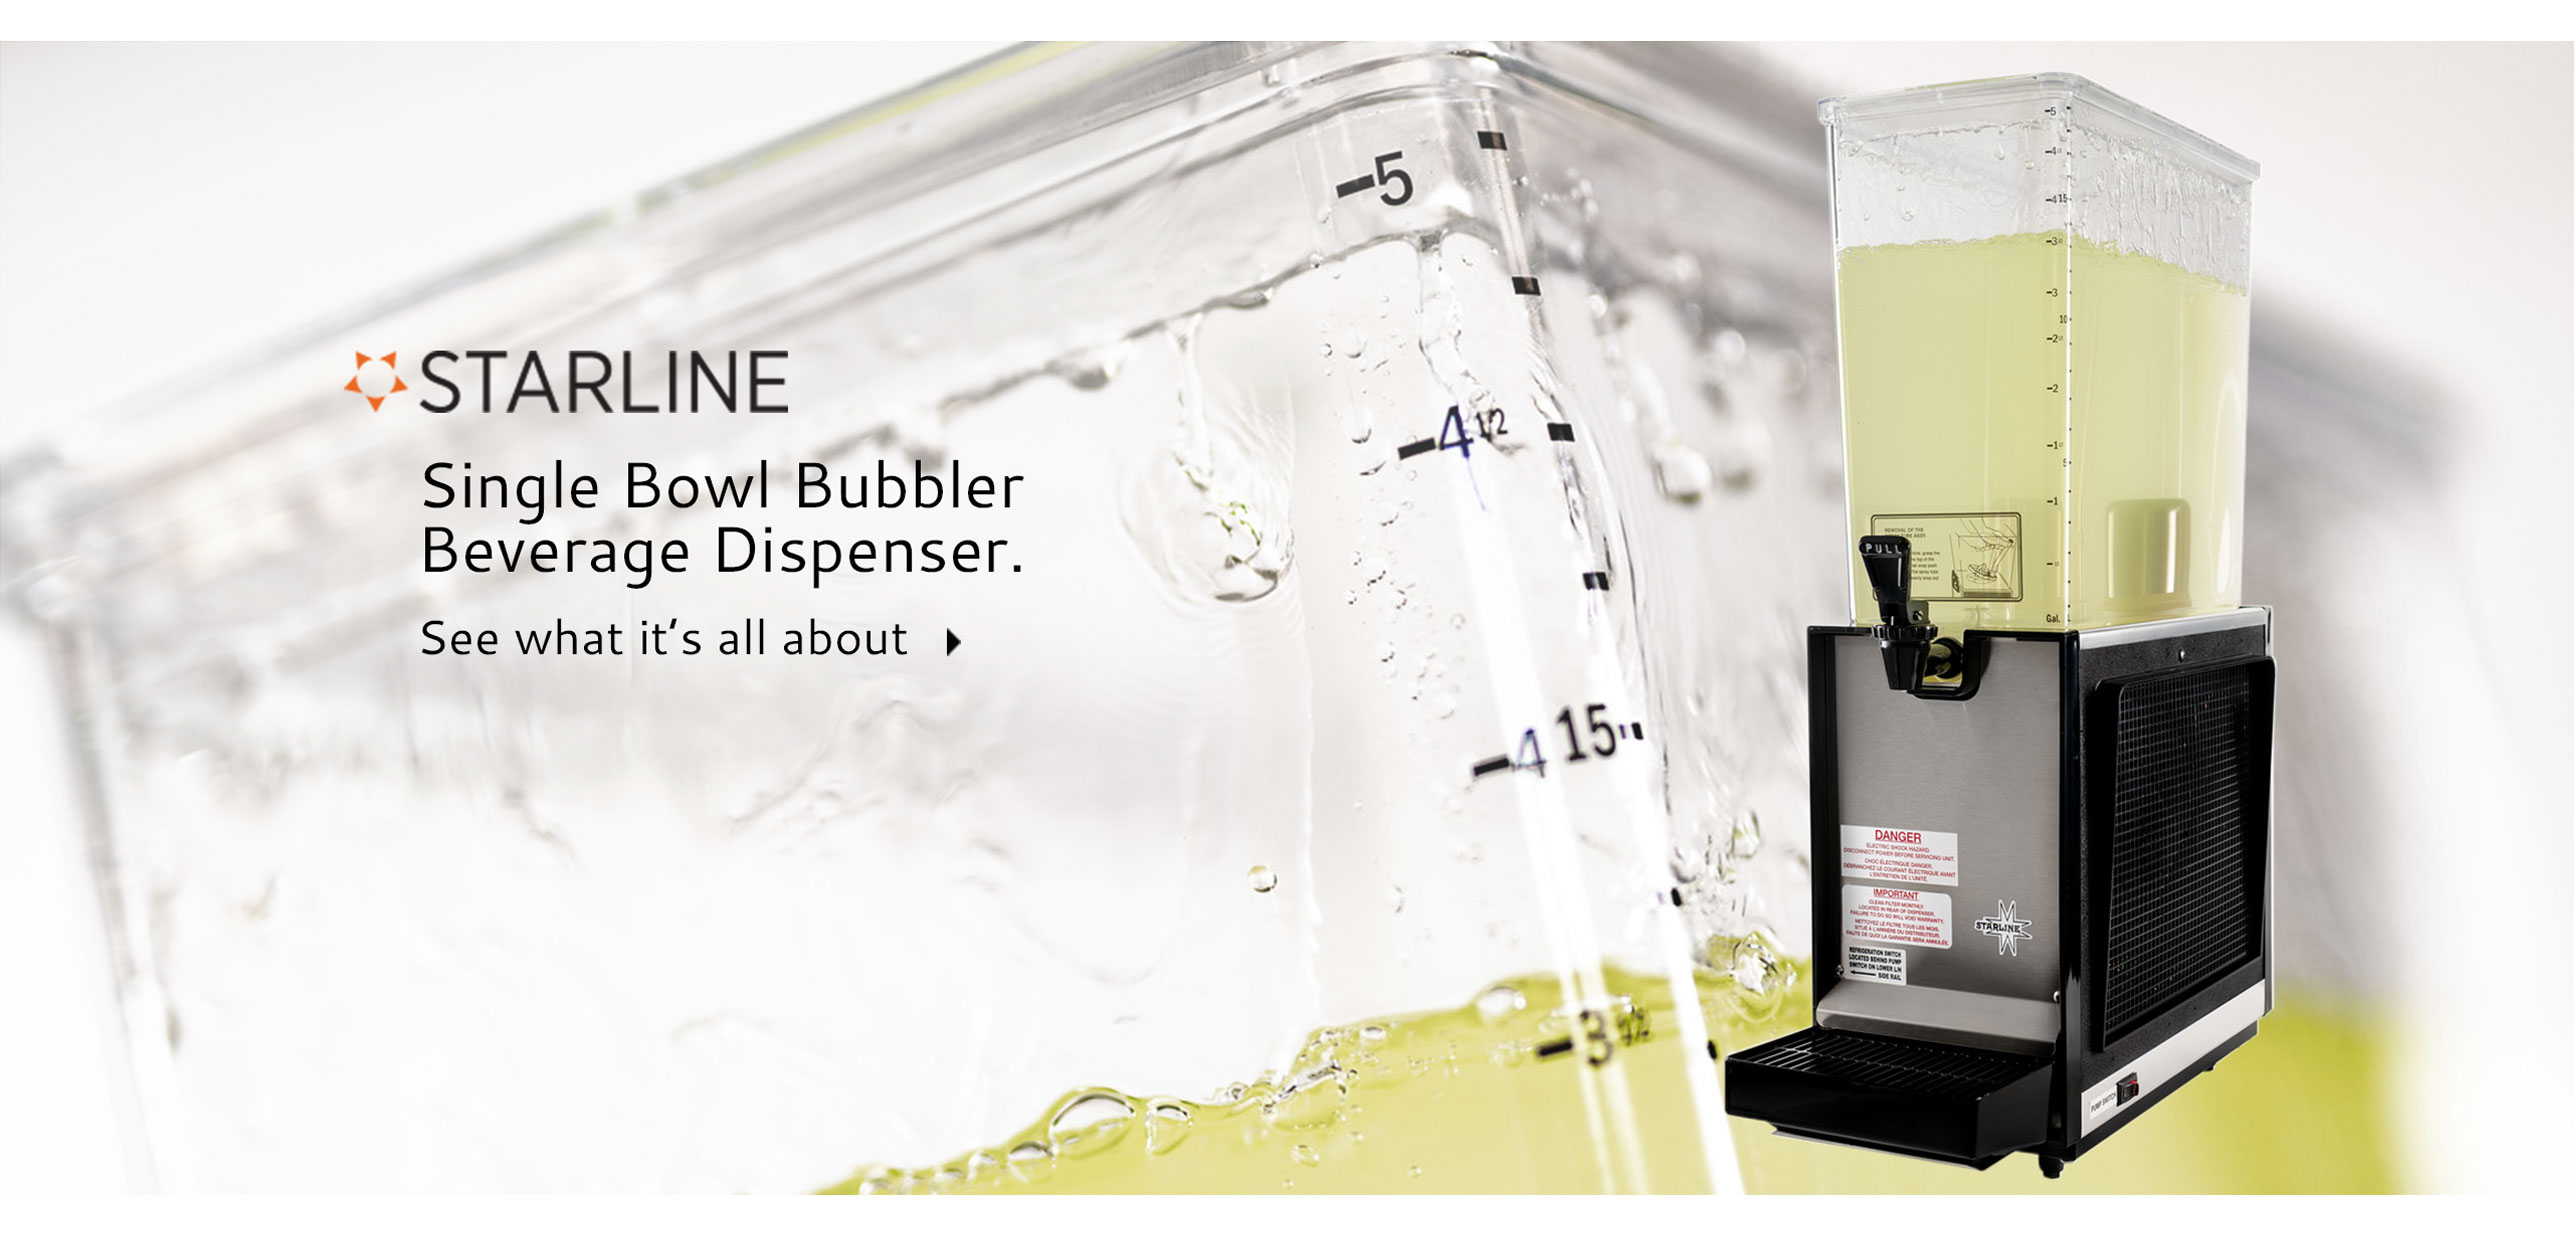 Starline S1 Double Bowl Bubbler Beverage Dispenser